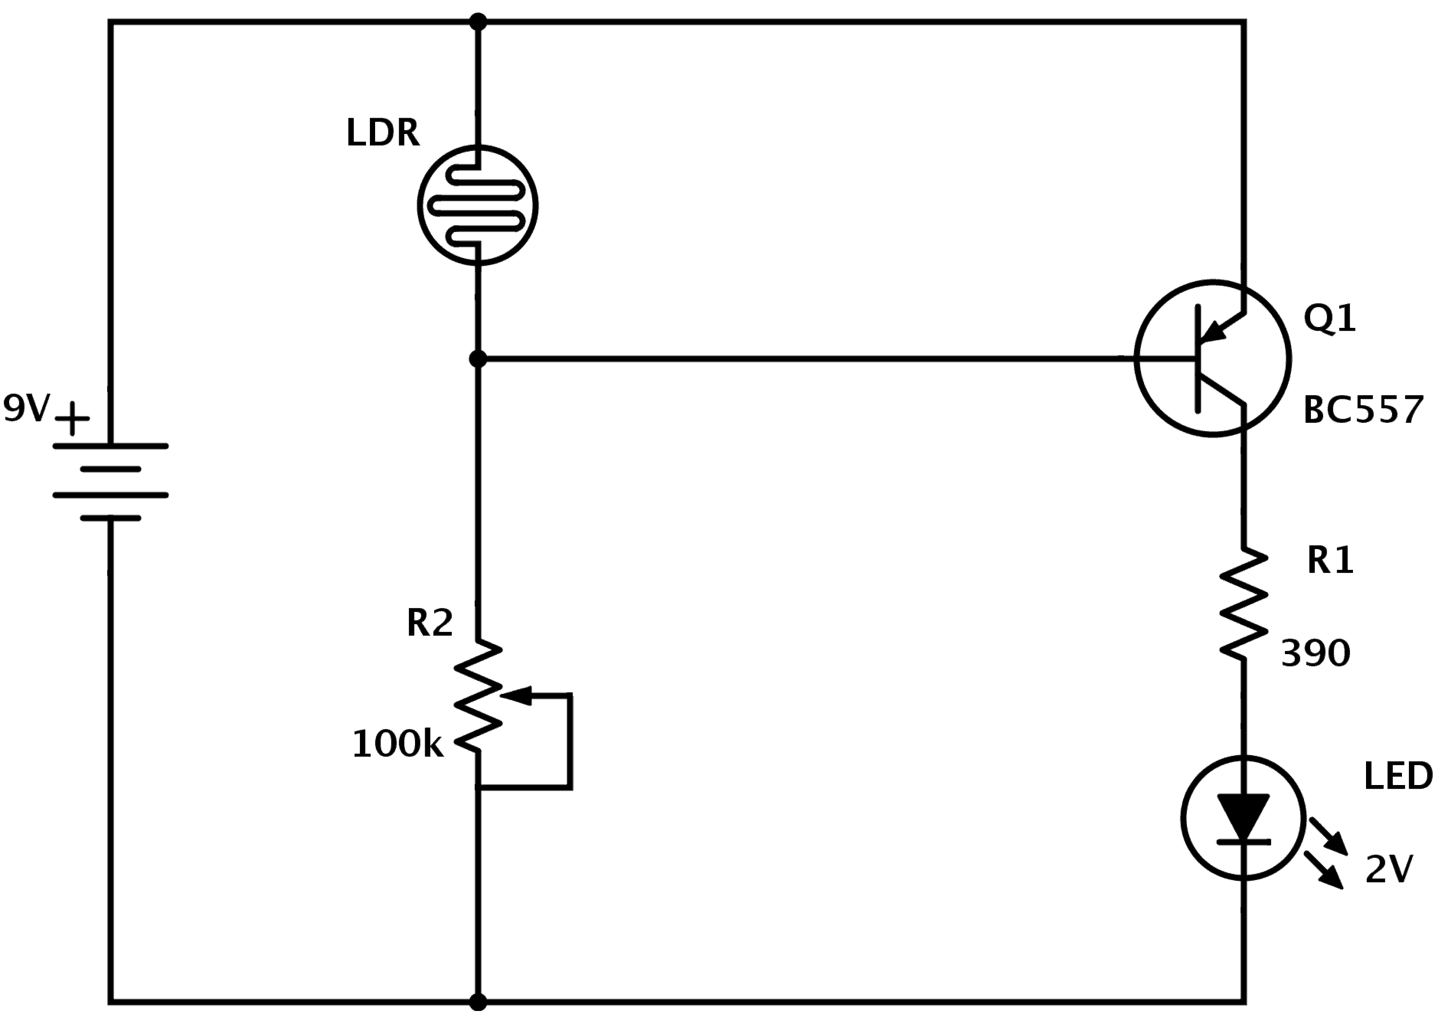 Ldr Circuit Diagram Build Electronic Circuits Panel Wiring On 12 Volt Solar Motion Light With Pnp Transistor Dark Detector